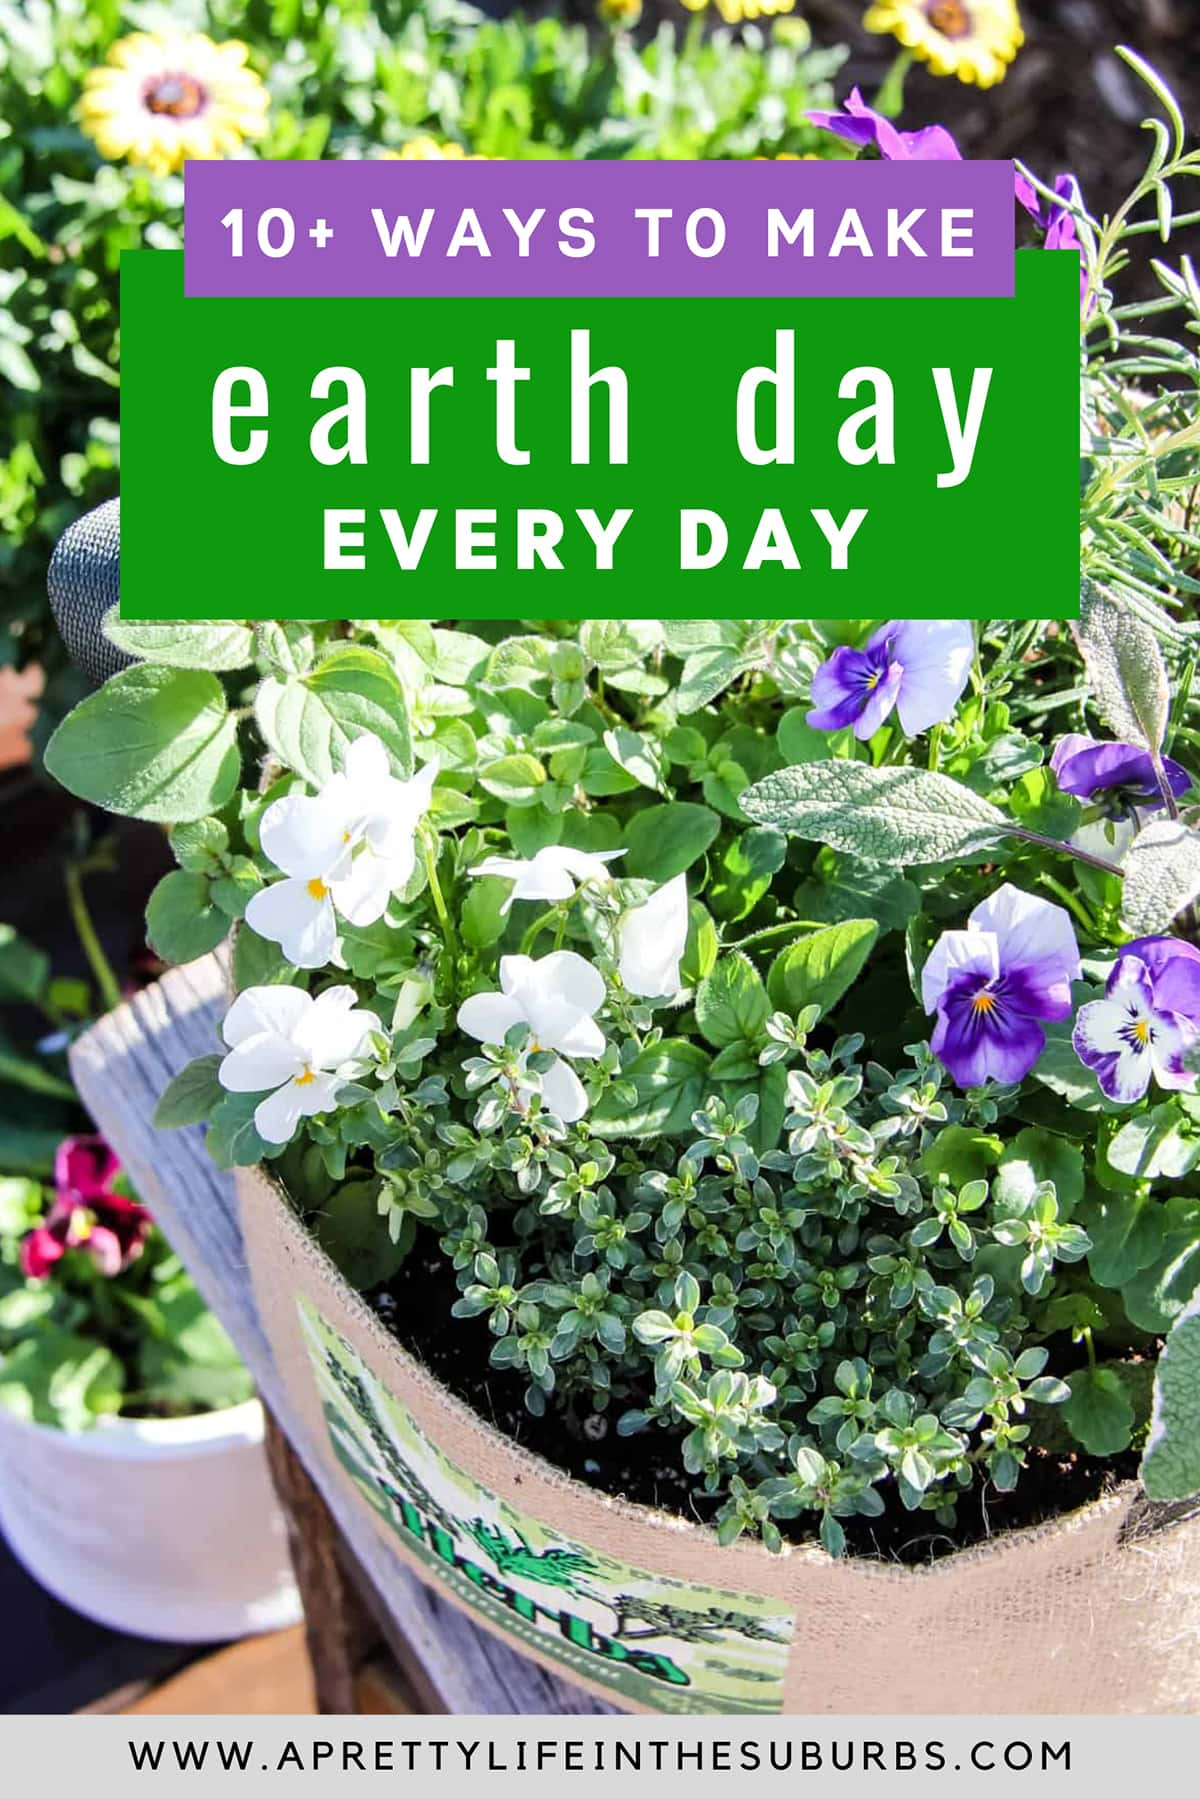 feature image for this Earth Day post